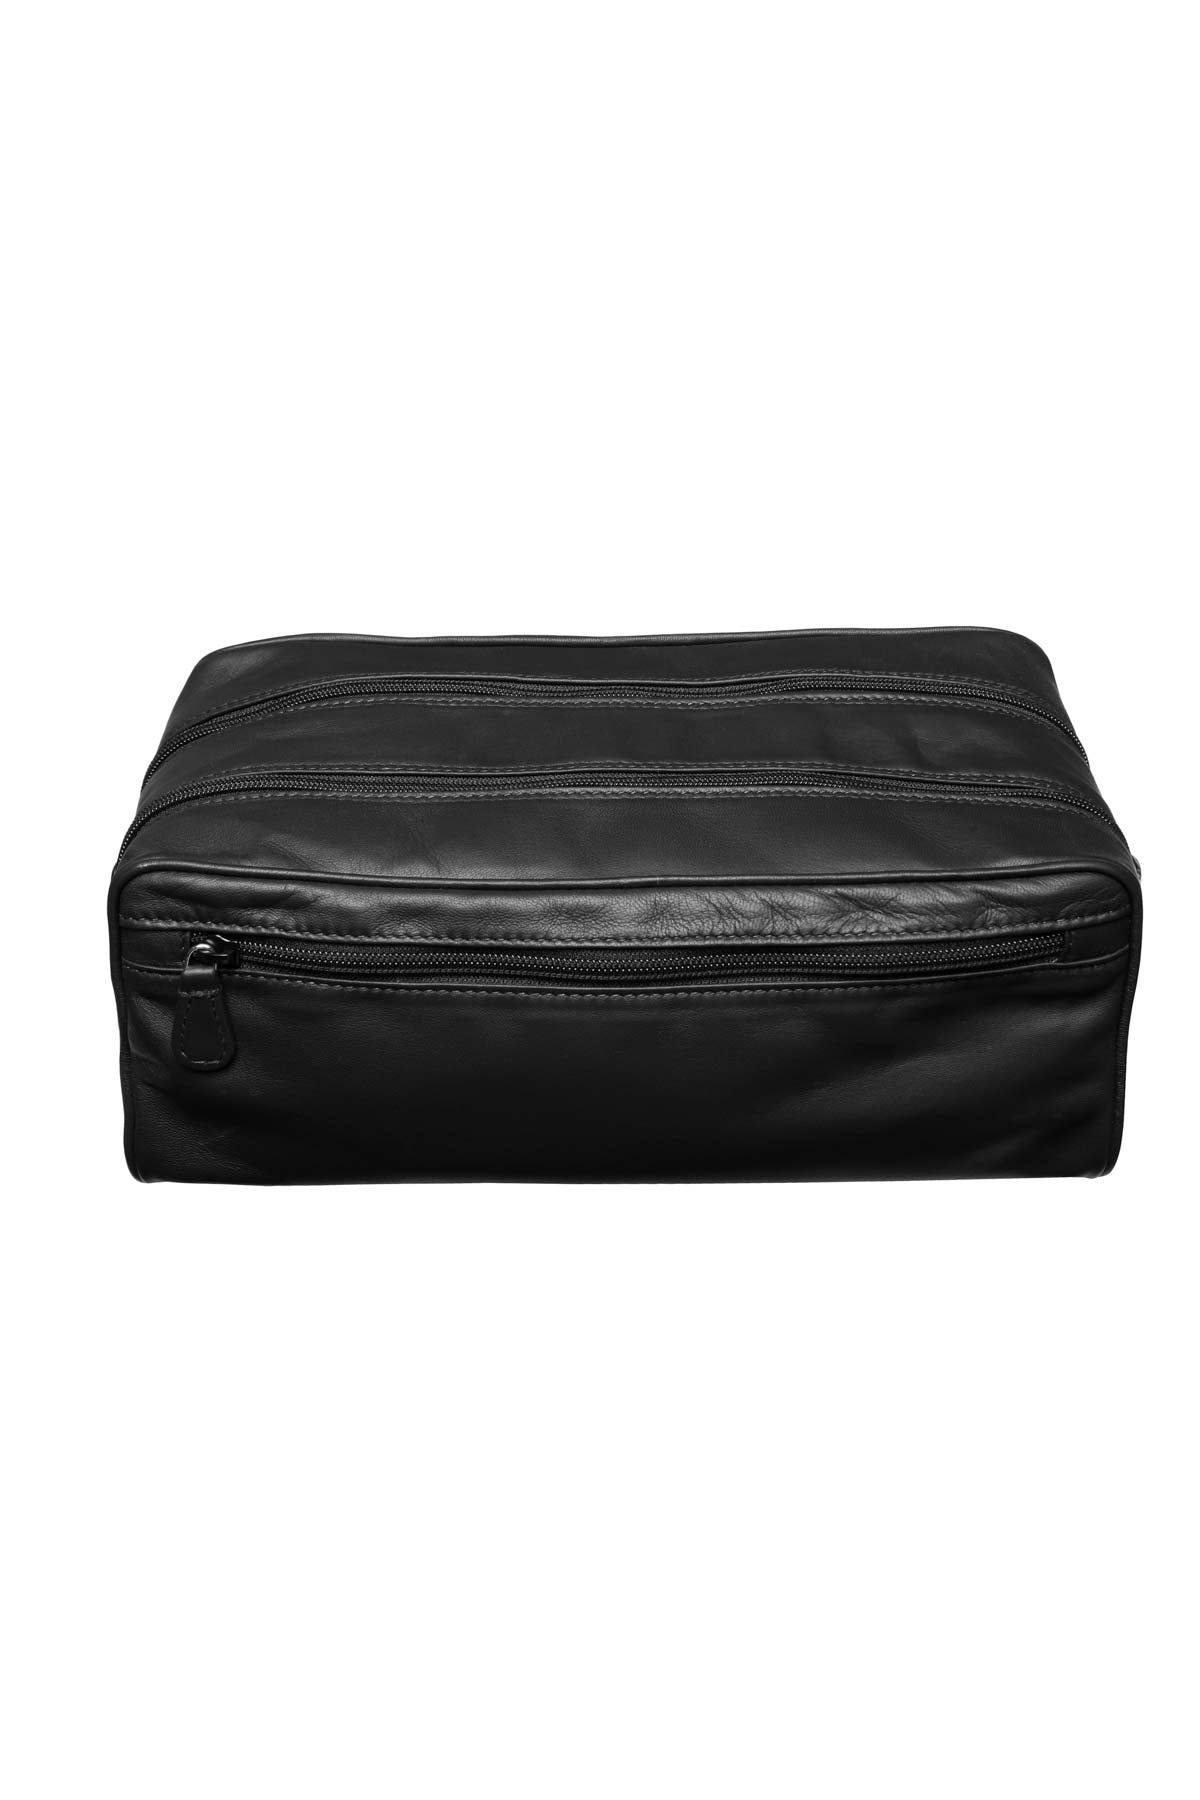 Large Leather Washbag - Black